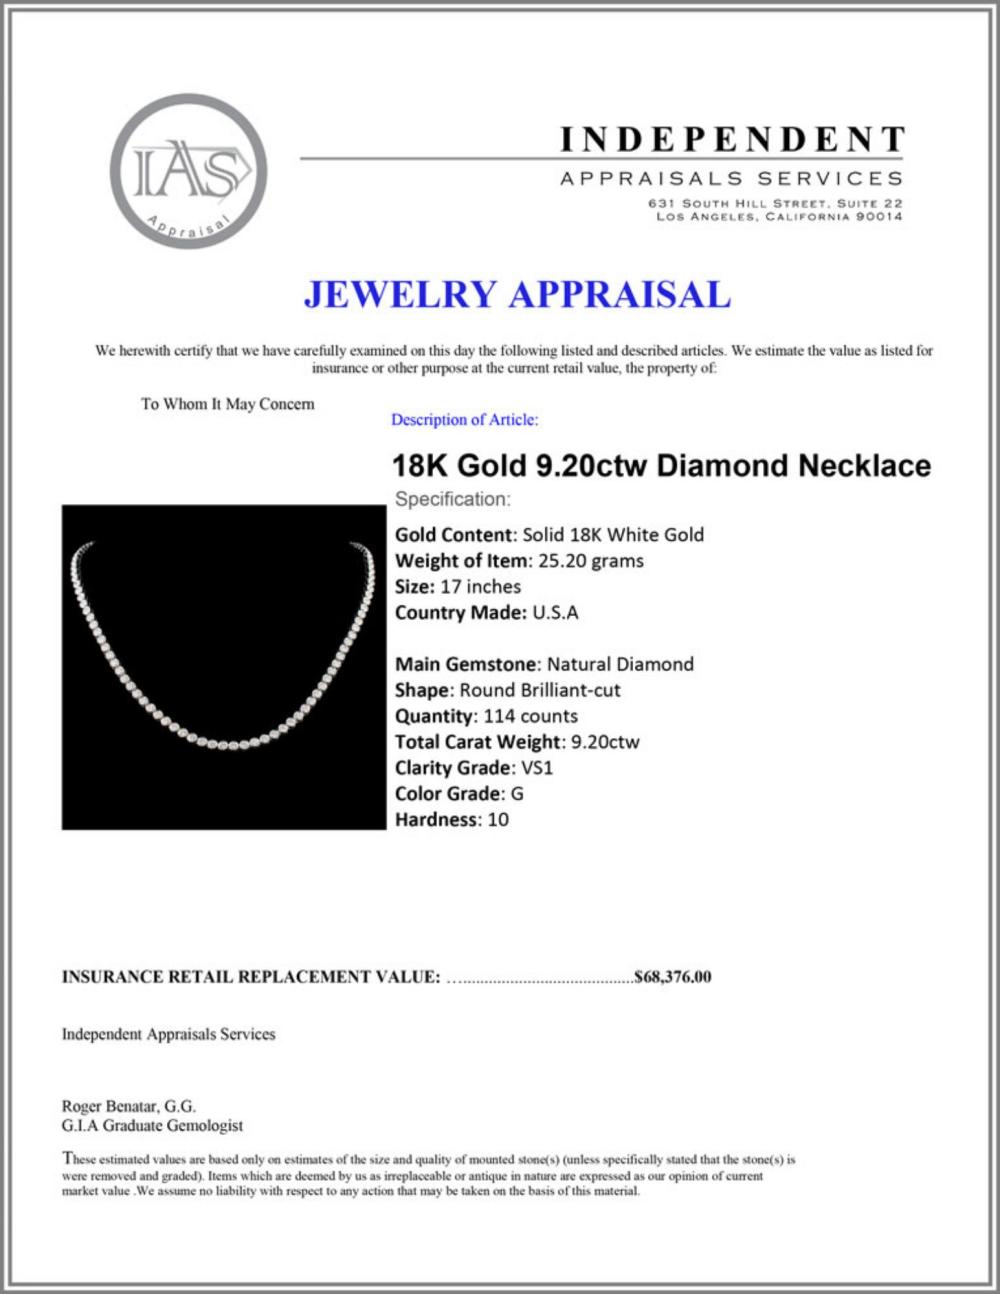 Lot 33: 18K Gold 9.20ctw Diamond Necklace